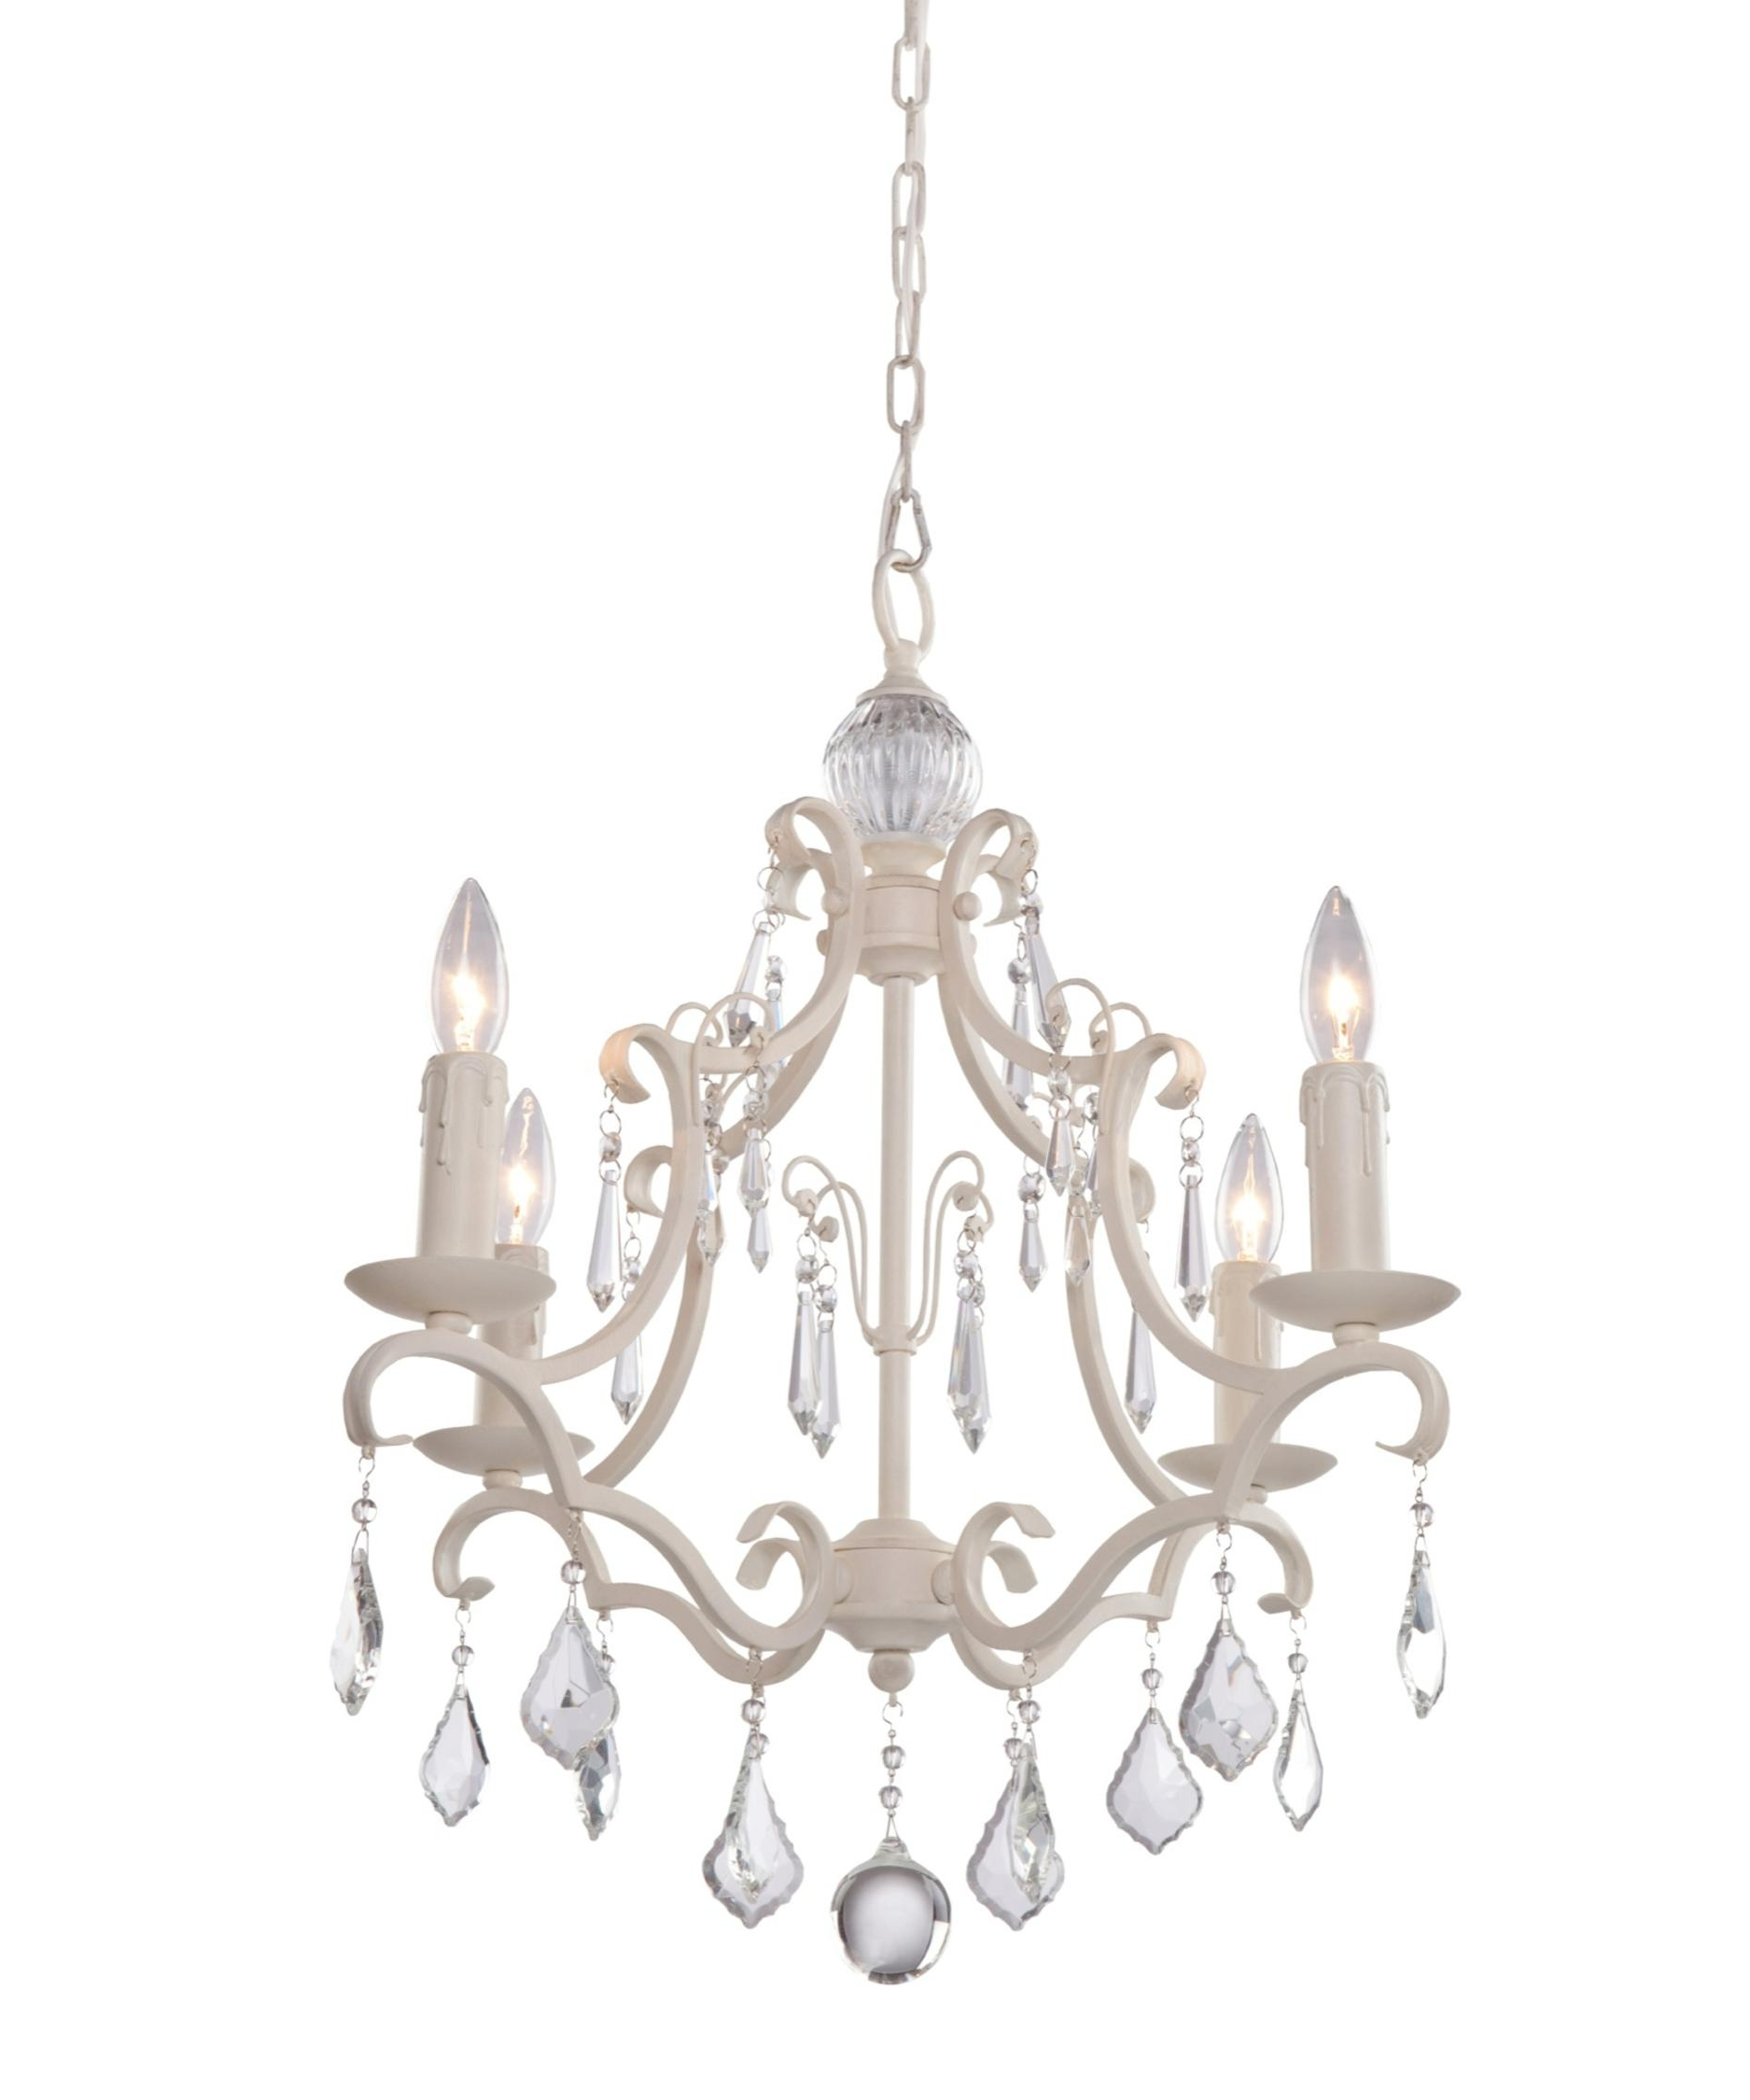 Recent Vintage Chandeliers Ebay – Otbsiu Pertaining To Vintage Chandeliers (View 12 of 20)